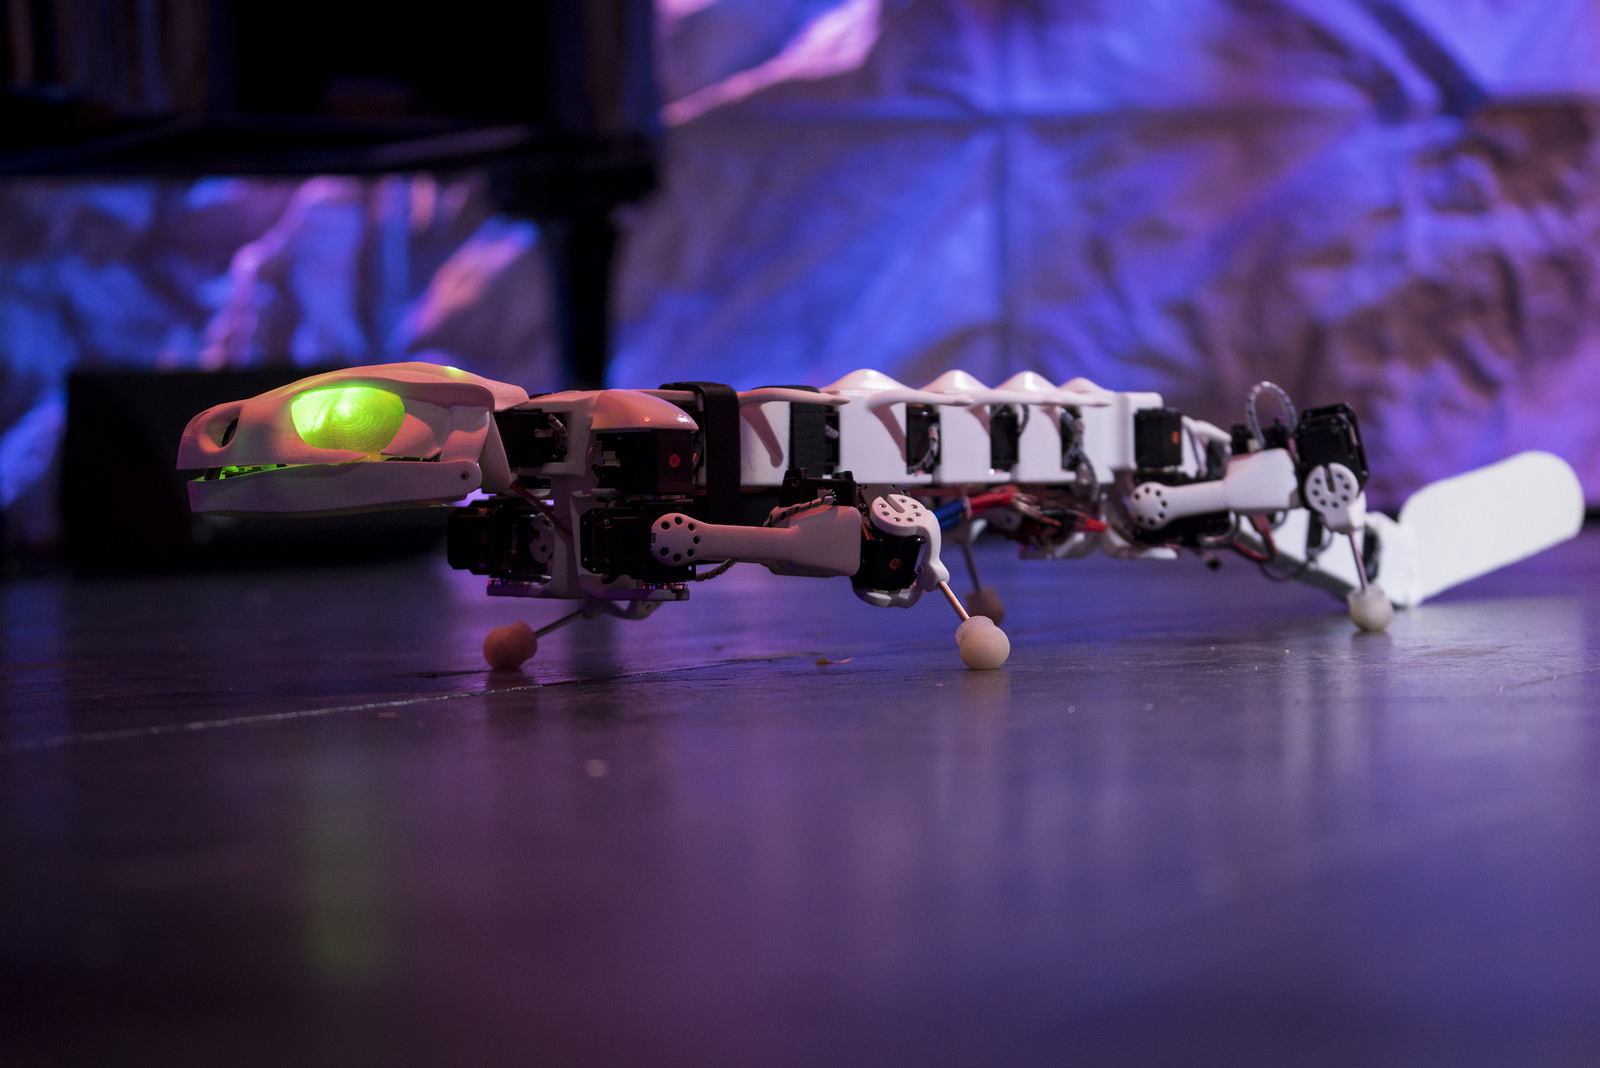 A salamander robot from Auke Ijspeert's lab in Switzerland is helping us understand how animals move -- and how to make better robots too. Photo: James Duncan Davidson